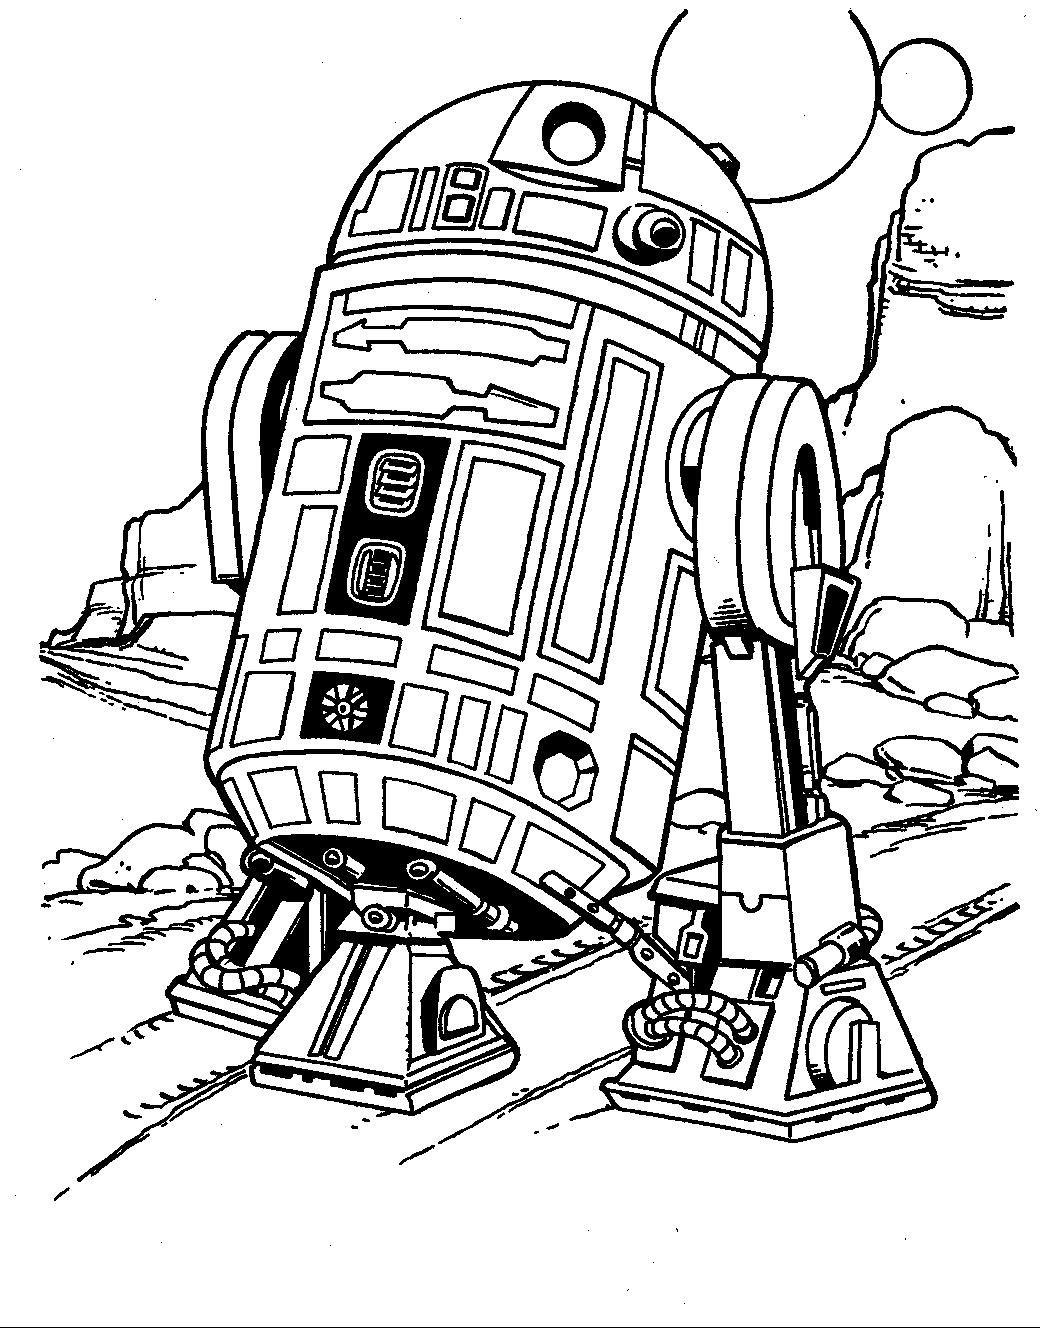 Hundreds Of Free Coloring Pages the Boys Pinterest Printable Of Fresh Star Wars Coloring Pages to Print